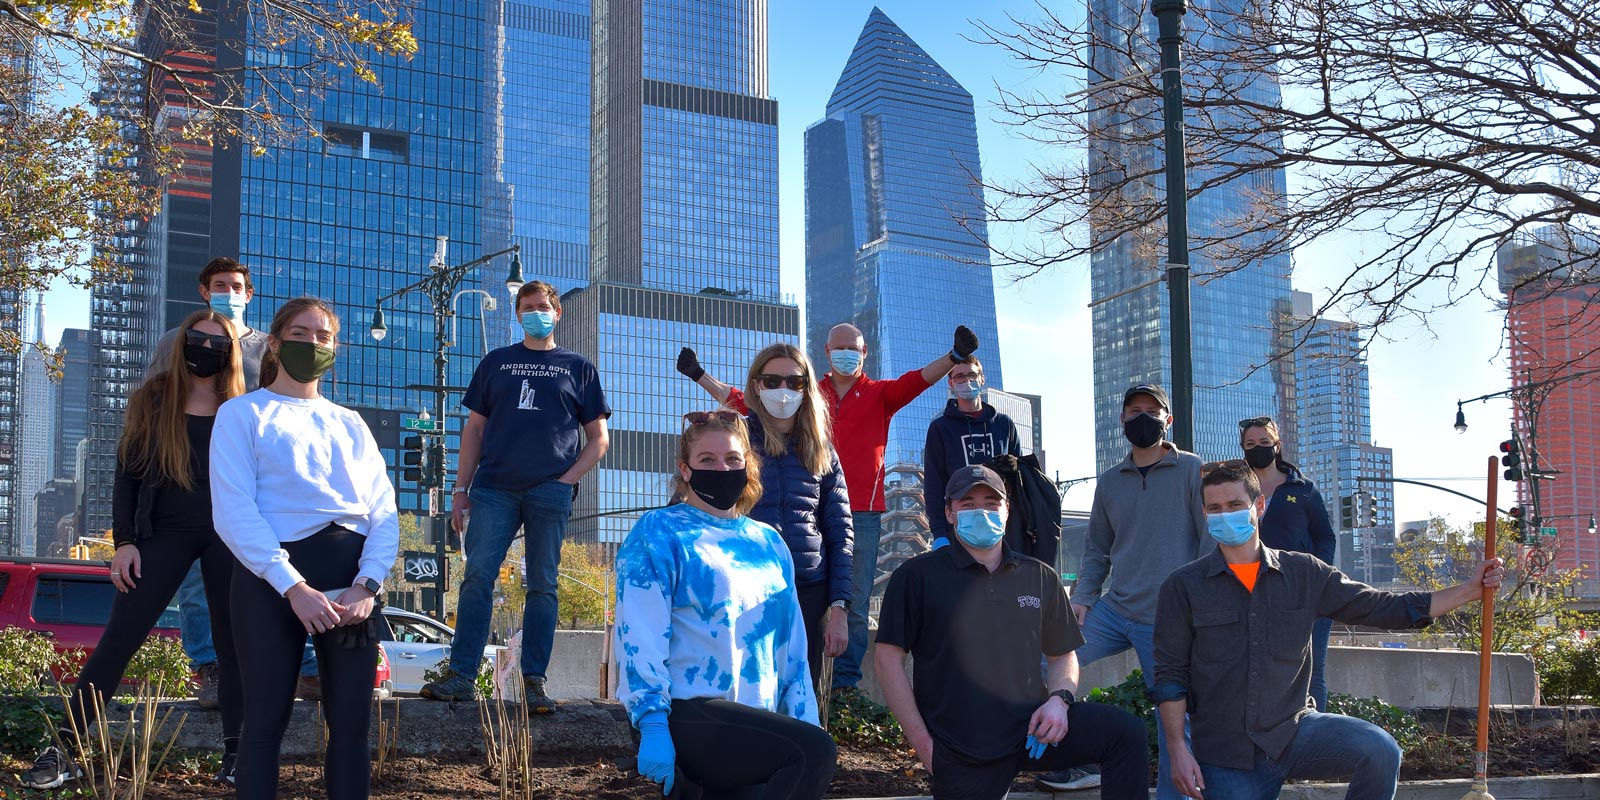 Celebrating and volunteering for Hudson River Park